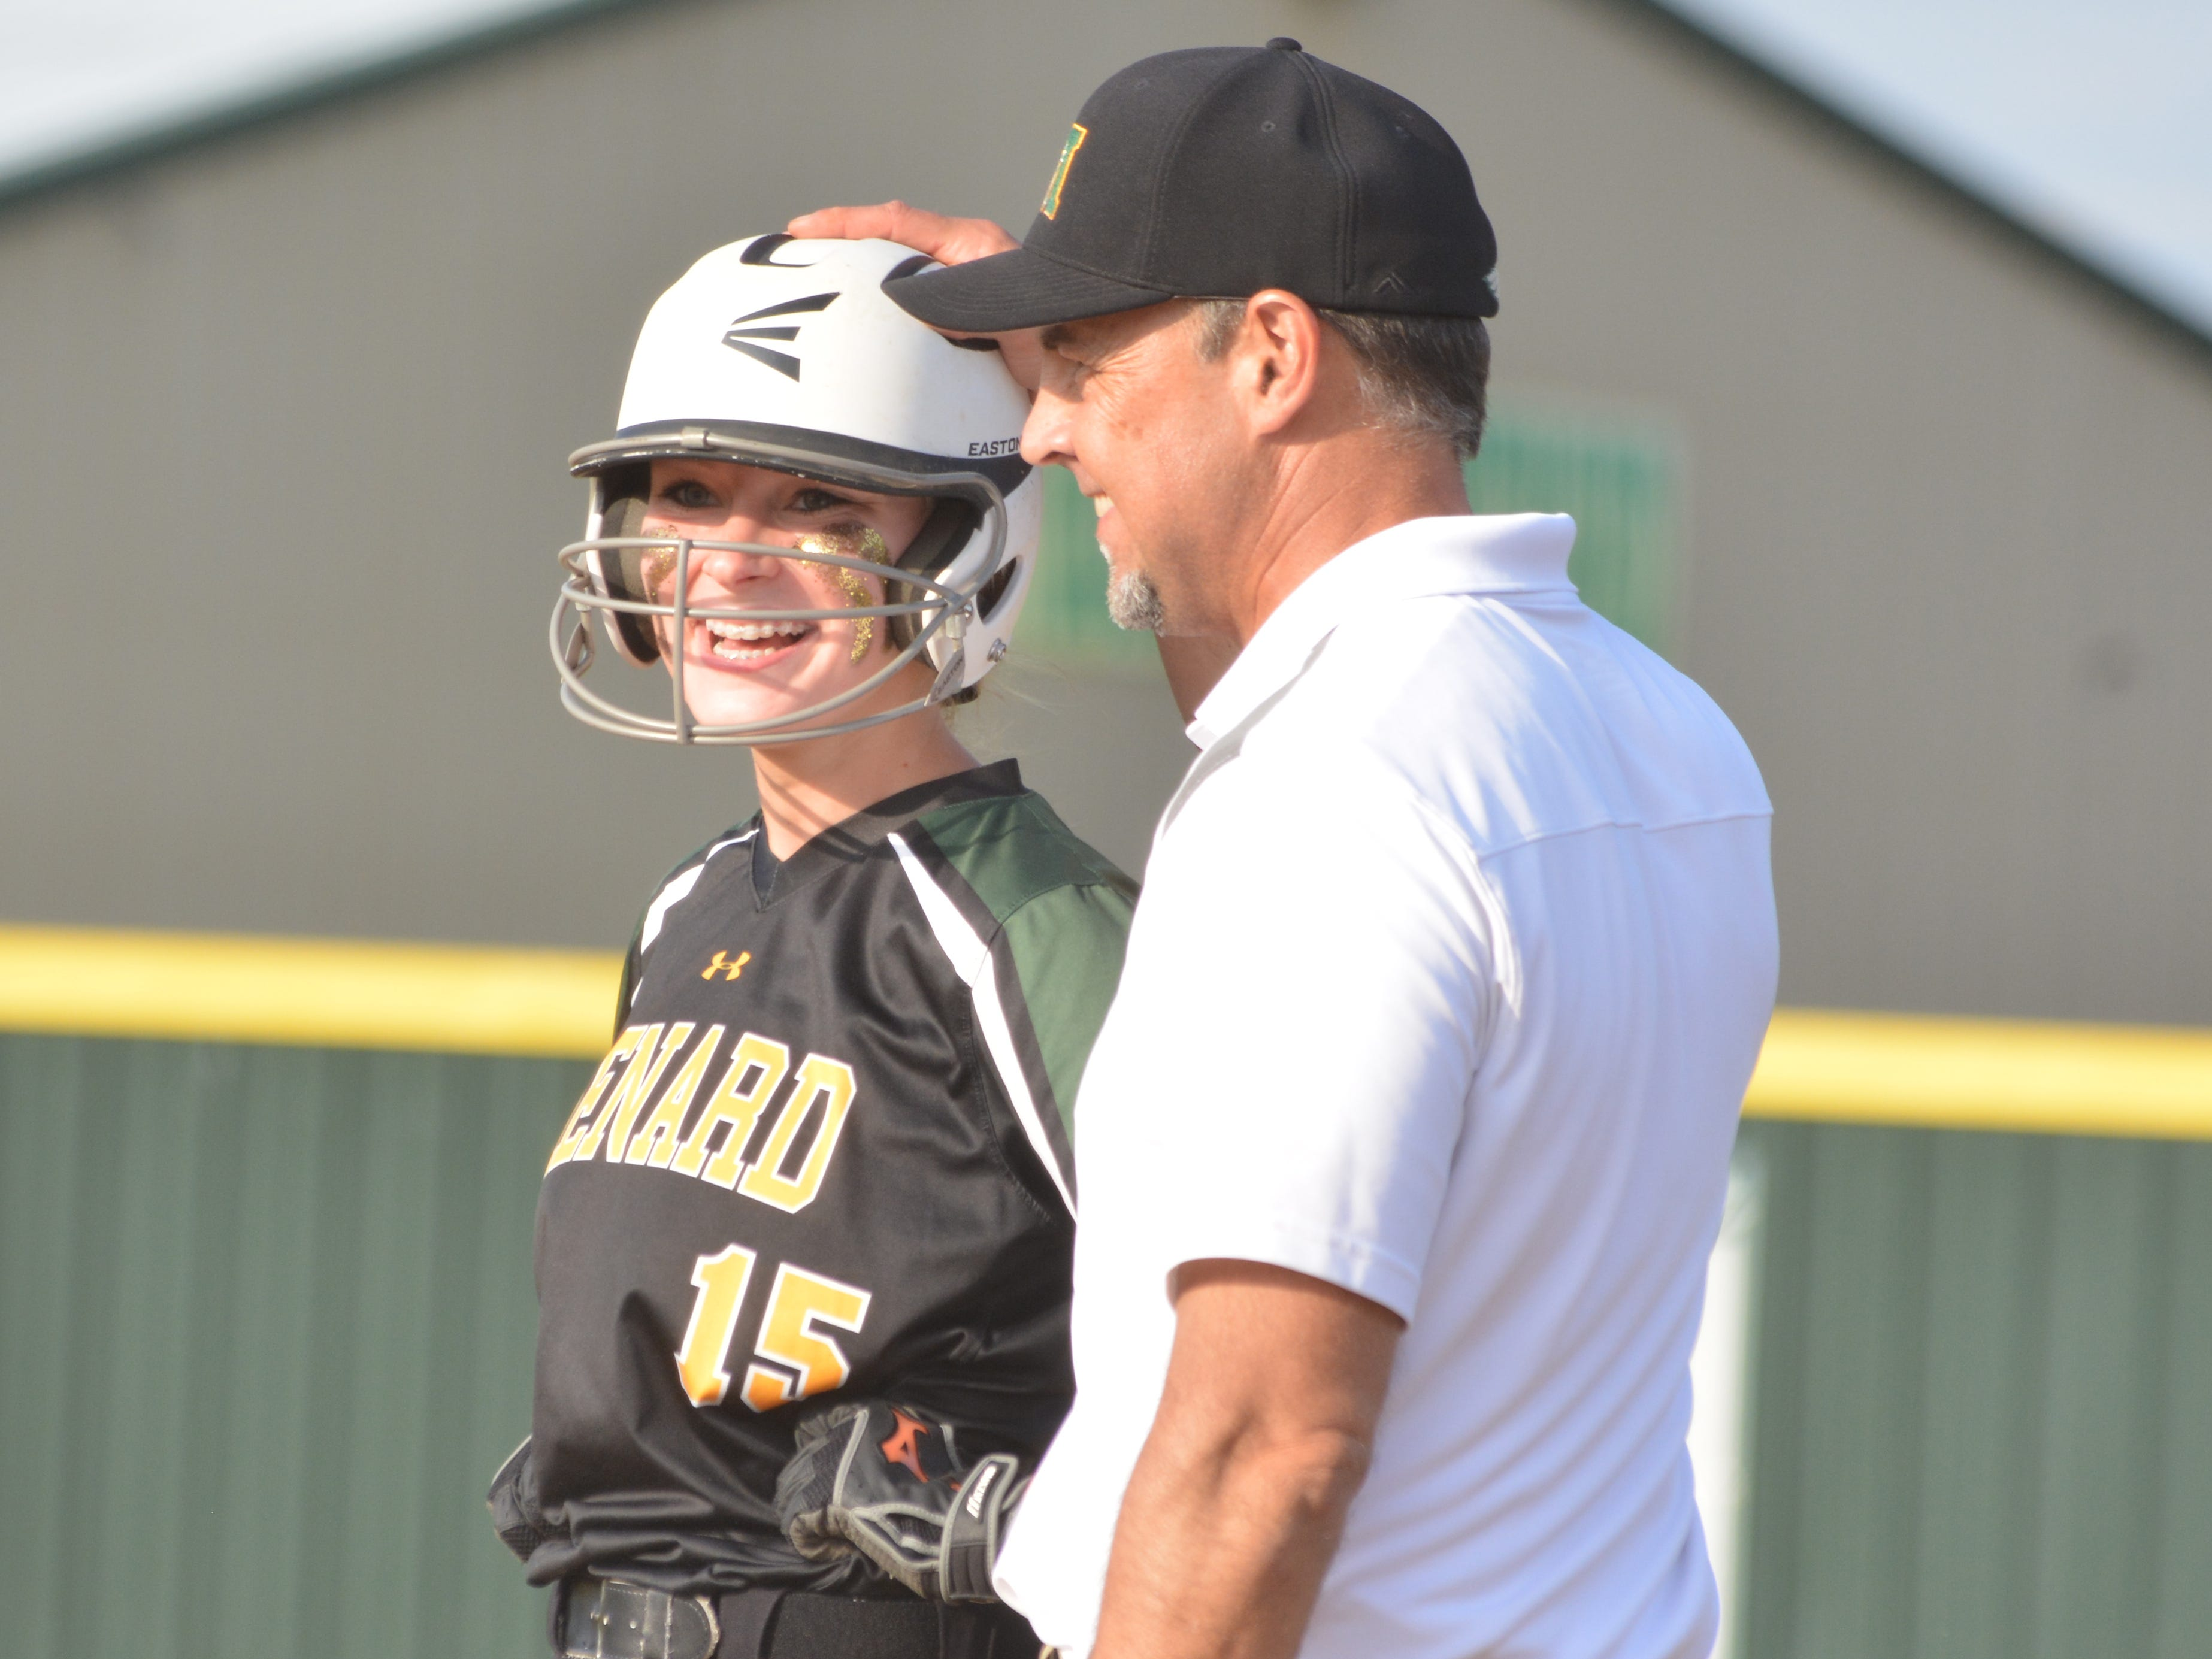 Madalyn Mahfouz (15, left) smiles as assistant coach Mark Vilar pats her head after Mahfouz's first base hit brought in a run Thursday.